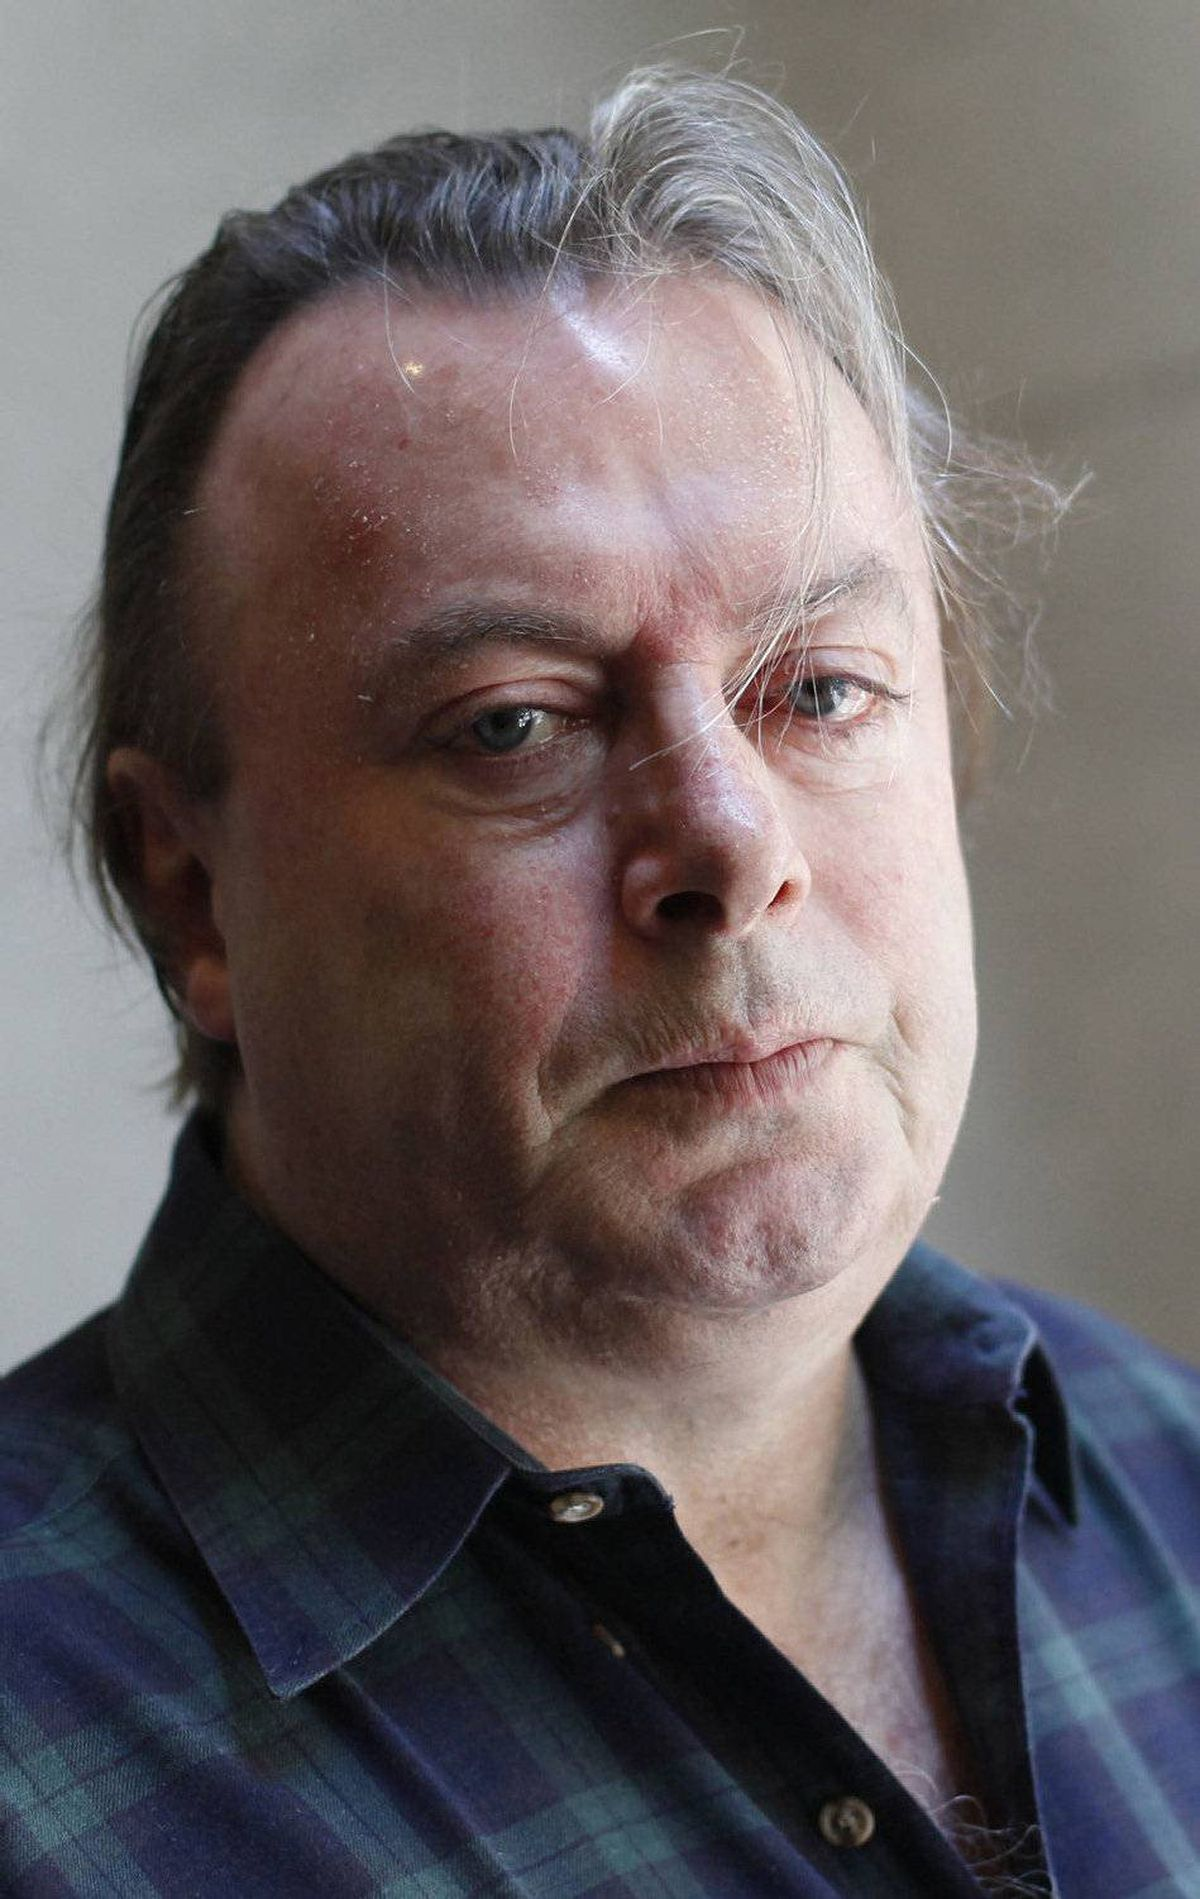 """Christopher Hitchens, journalist and author of his new memoir """"Hitch 22,"""" poses for a portrait outside his hotel in New York, June 7, 2010. Already infamous for being the socialist who called Margaret Thatcher sexy and as the contrarian who loved George W. Bush's war in Iraq, Hitchens now wants to rewrite the Ten Commandments. Picture taken June 7, 2010. REUTERS/Shannon Stapleton (UNITED STATES - Tags: ENTERTAINMENT SOCIETY)"""